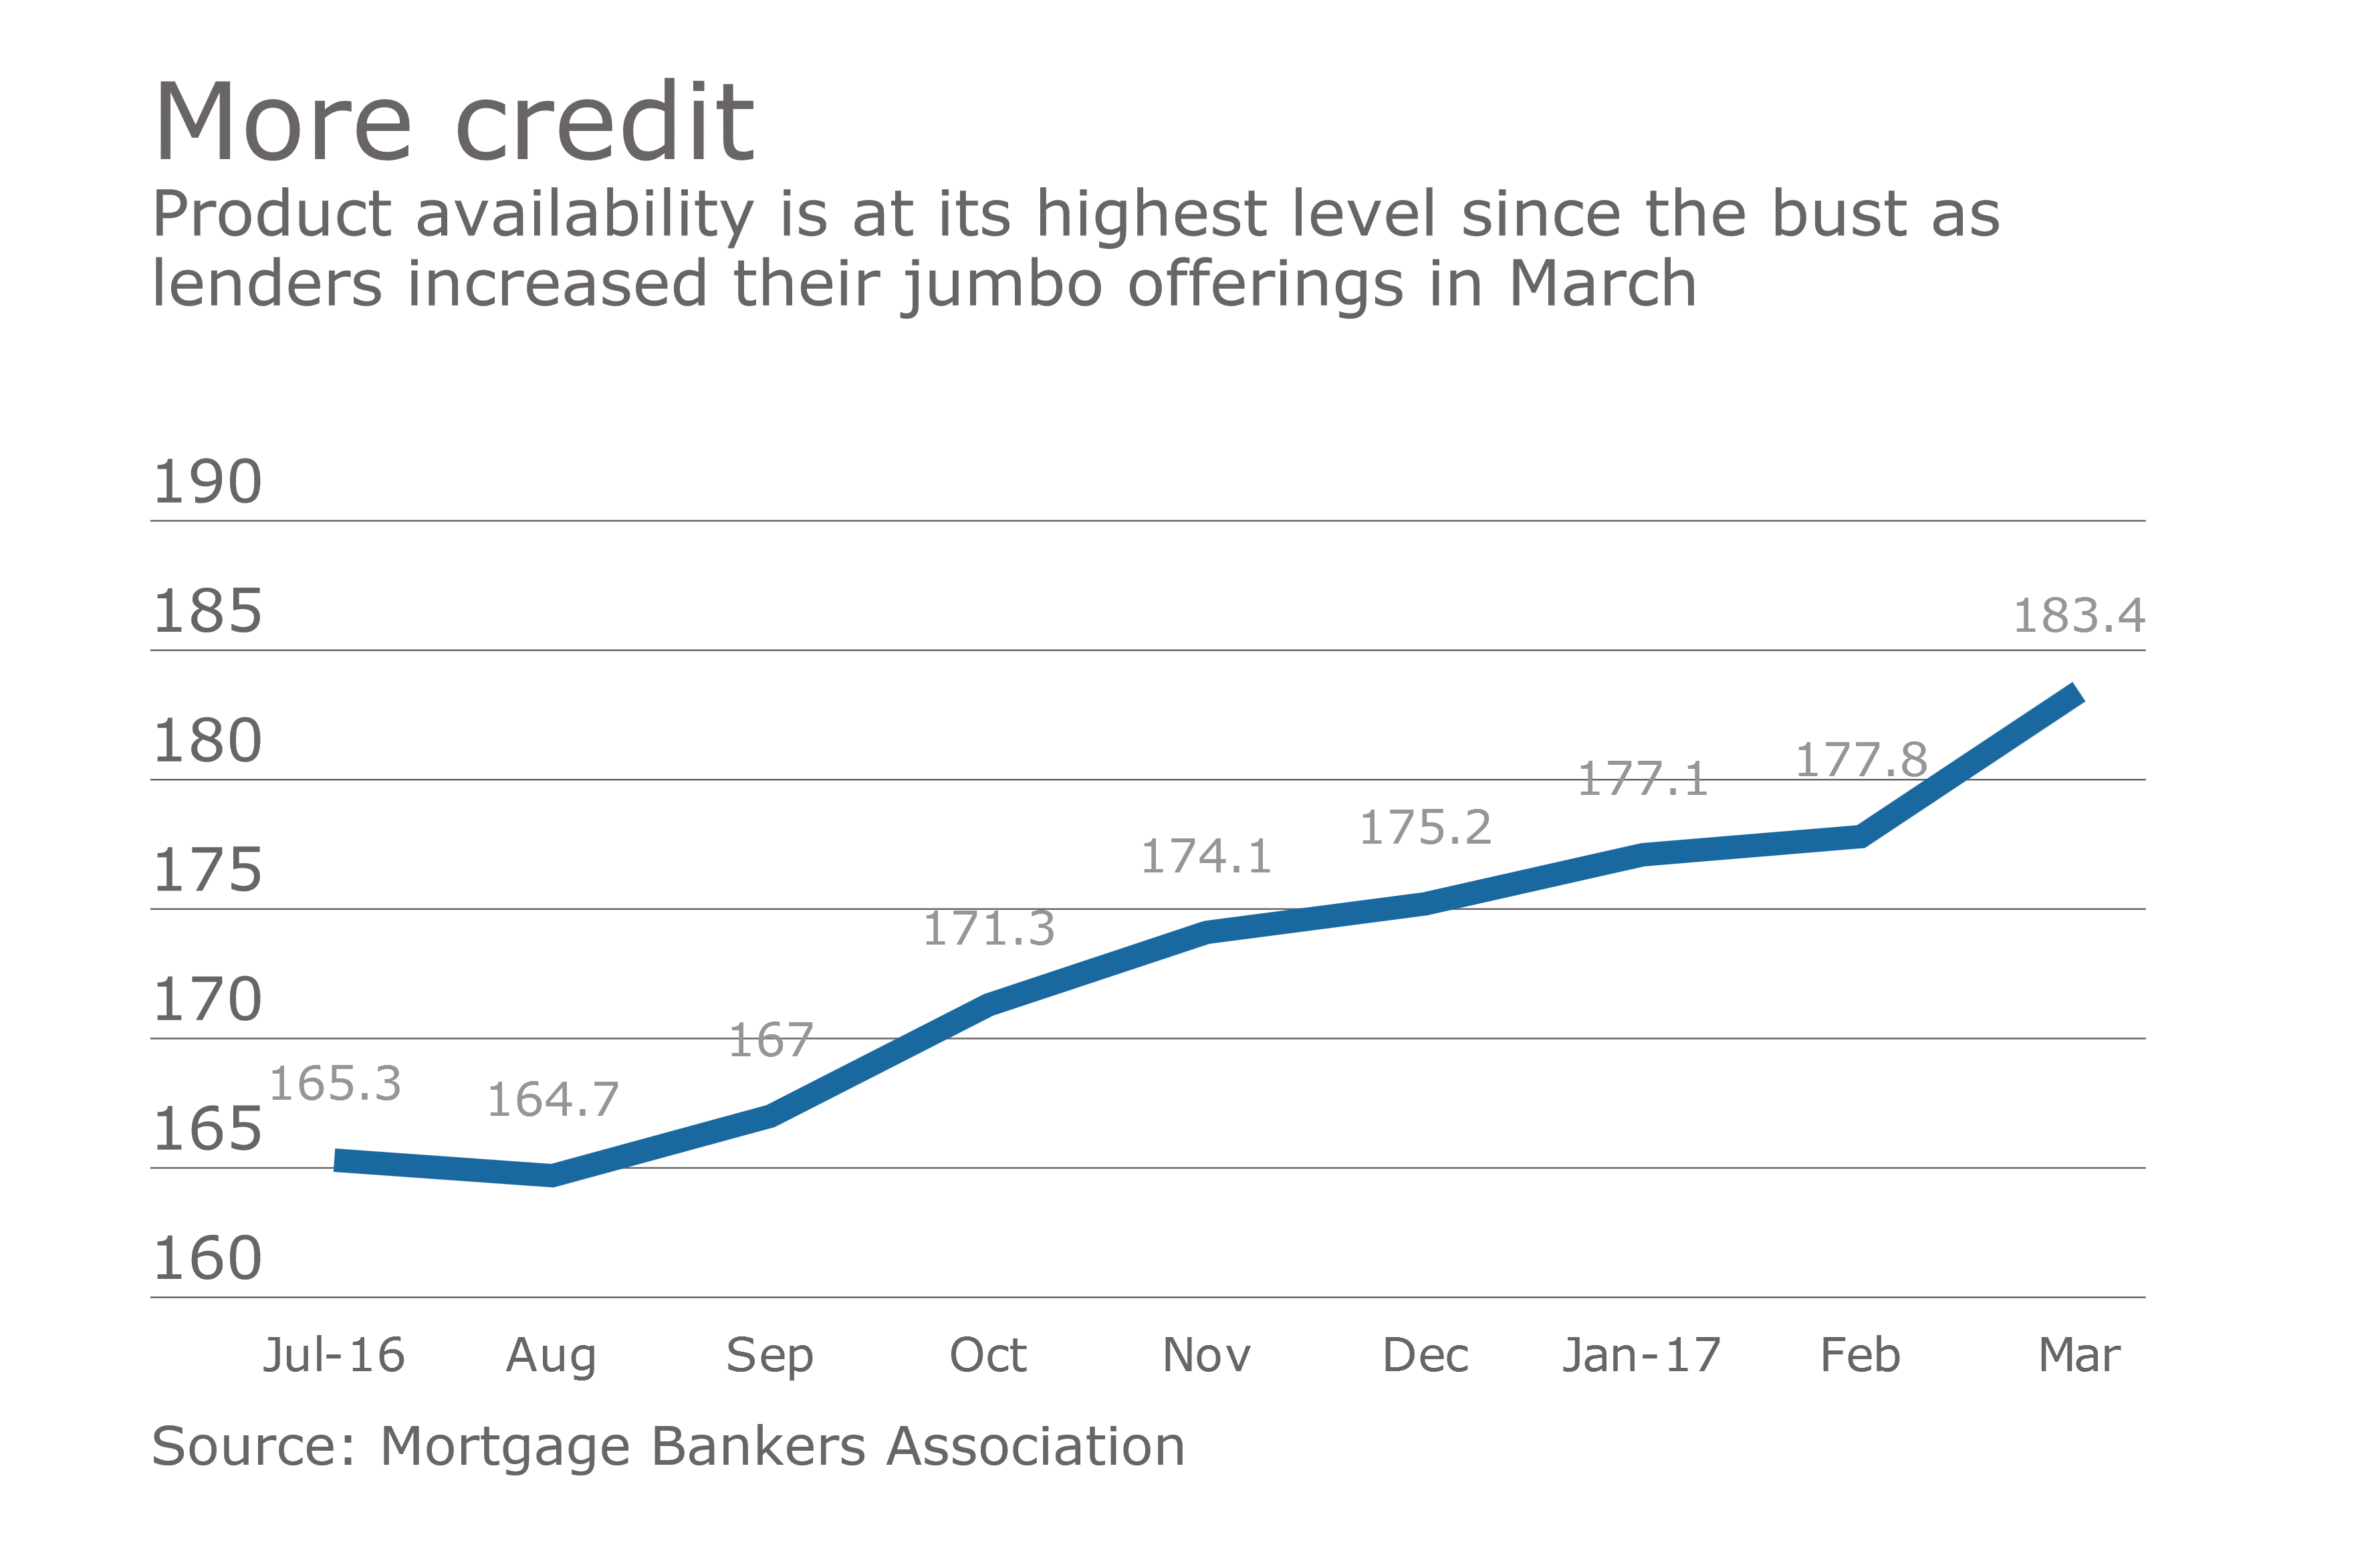 Surge In Jumbo Offerings Increase Credit Availability